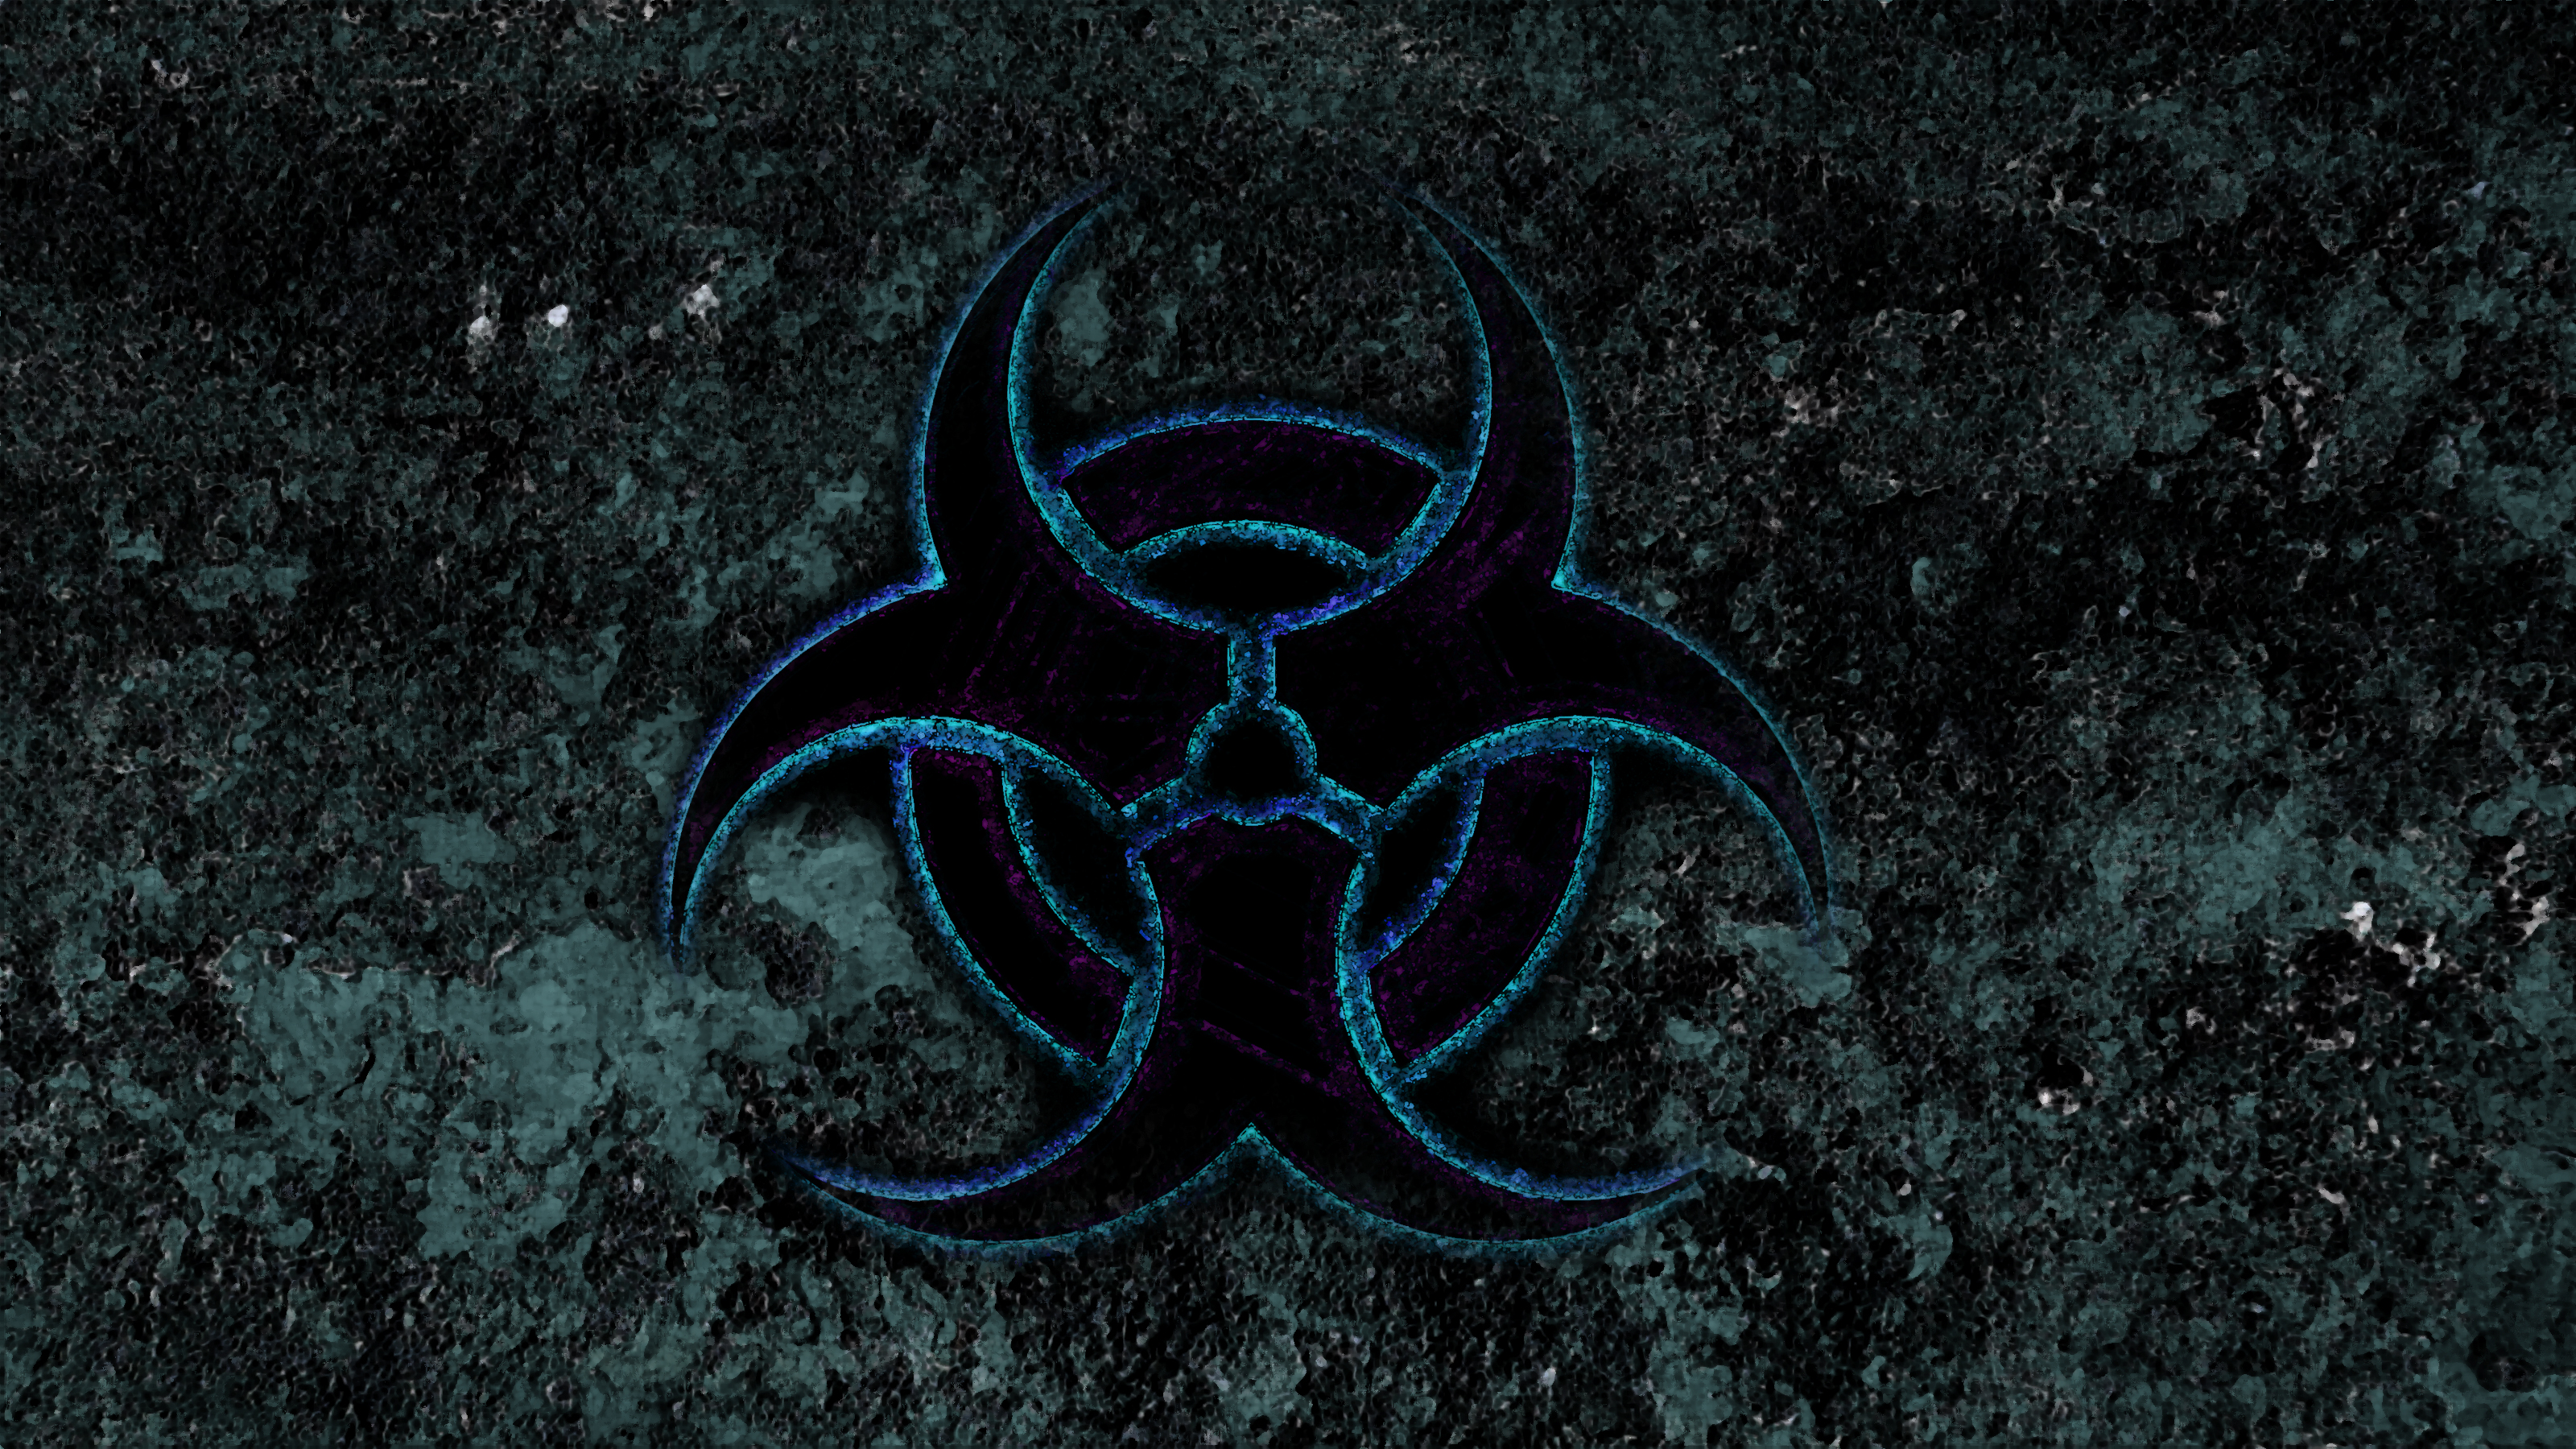 Biohazard blue by manbearpagan